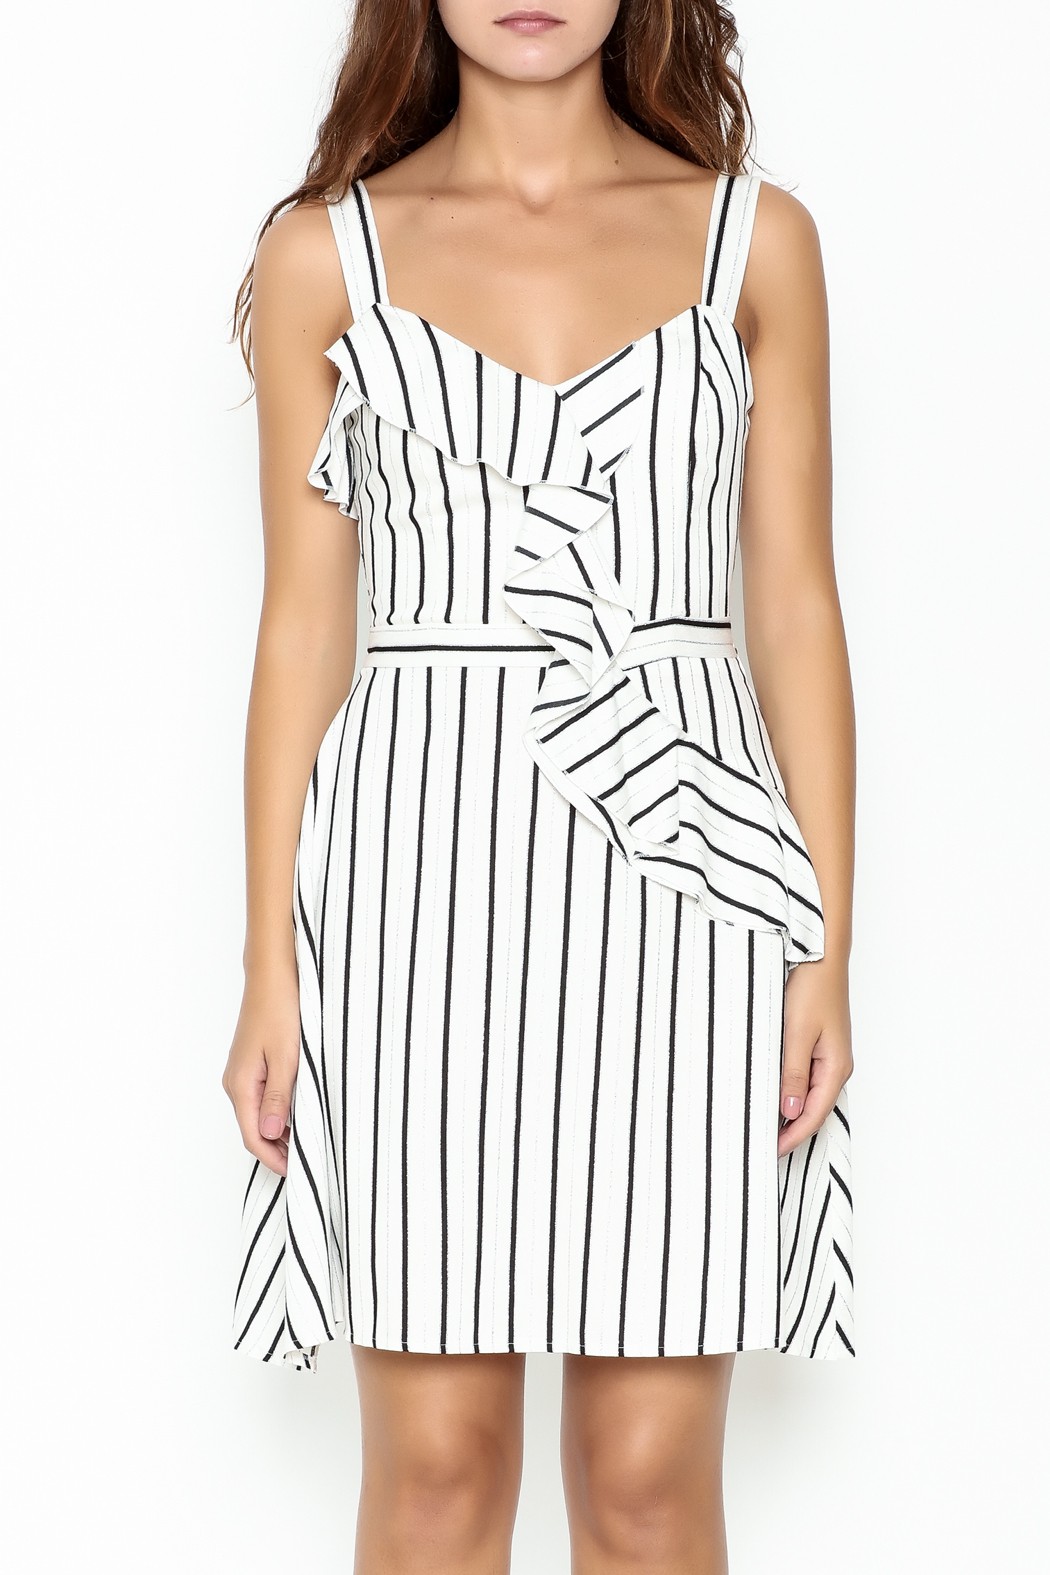 Marvy Fashion Striped Dress - Front Full Image